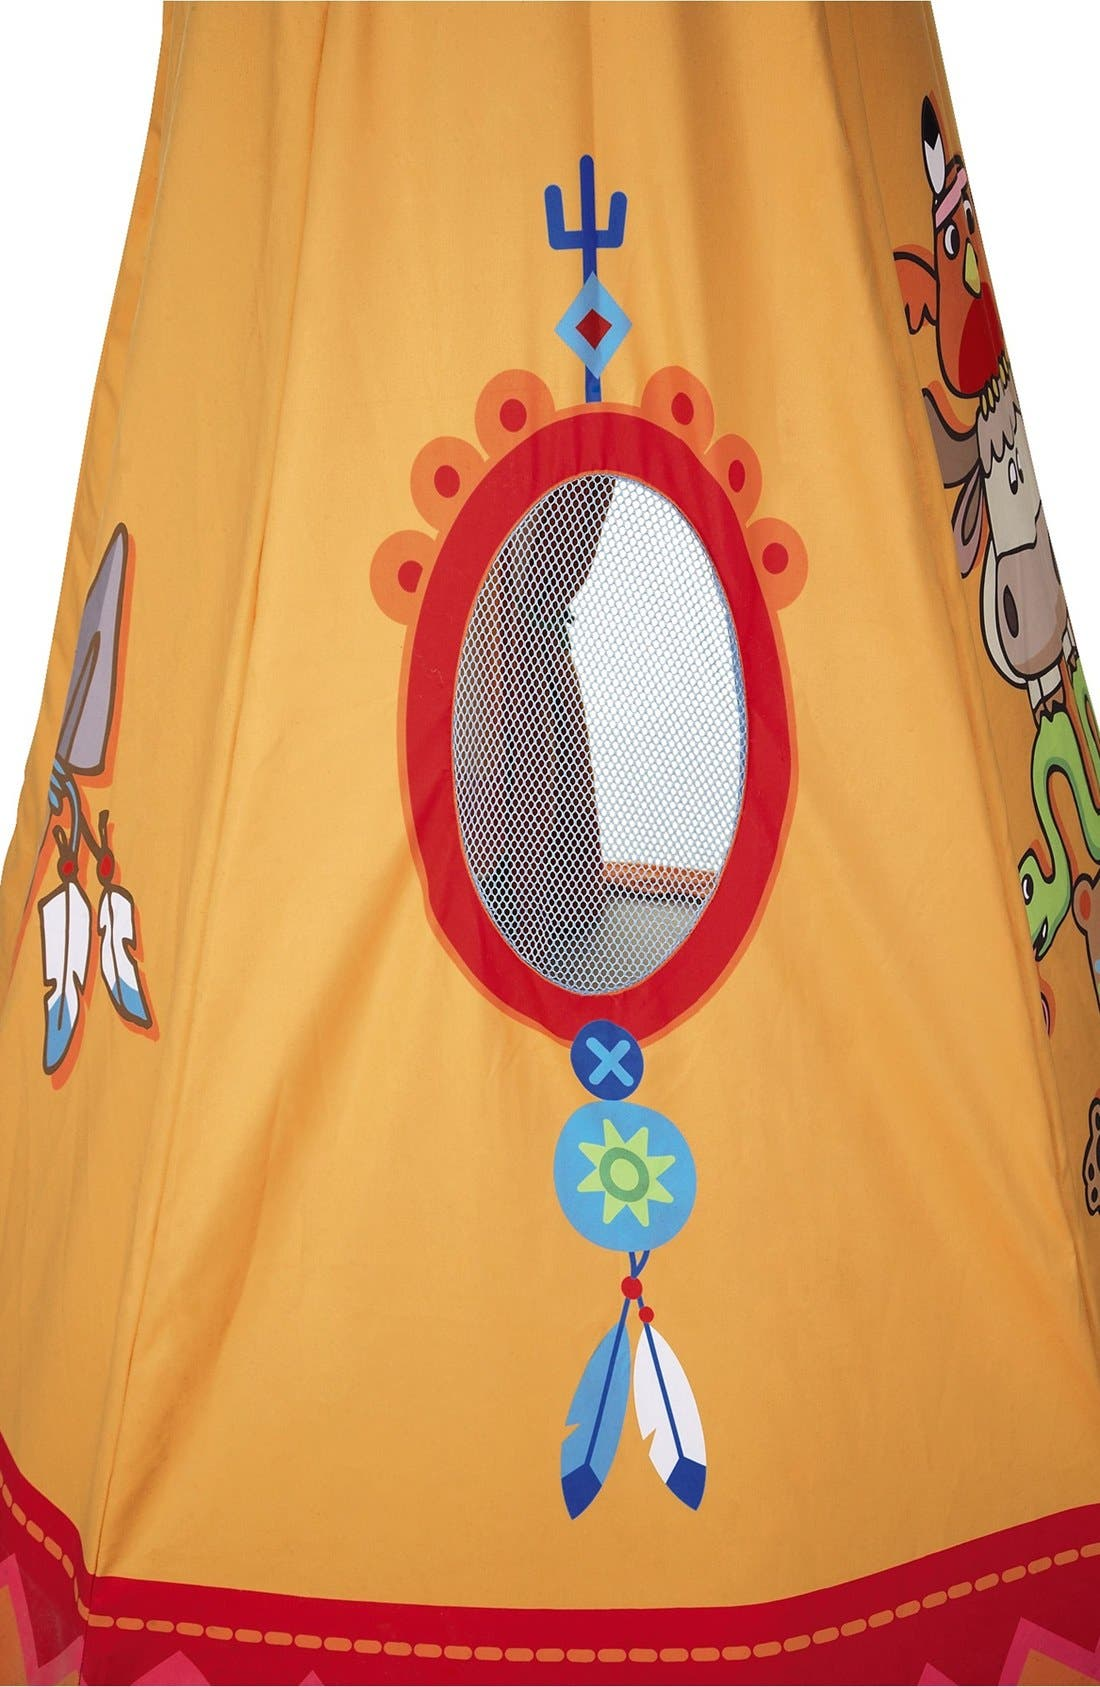 'Tepee' Play Tent,                             Alternate thumbnail 2, color,                             800